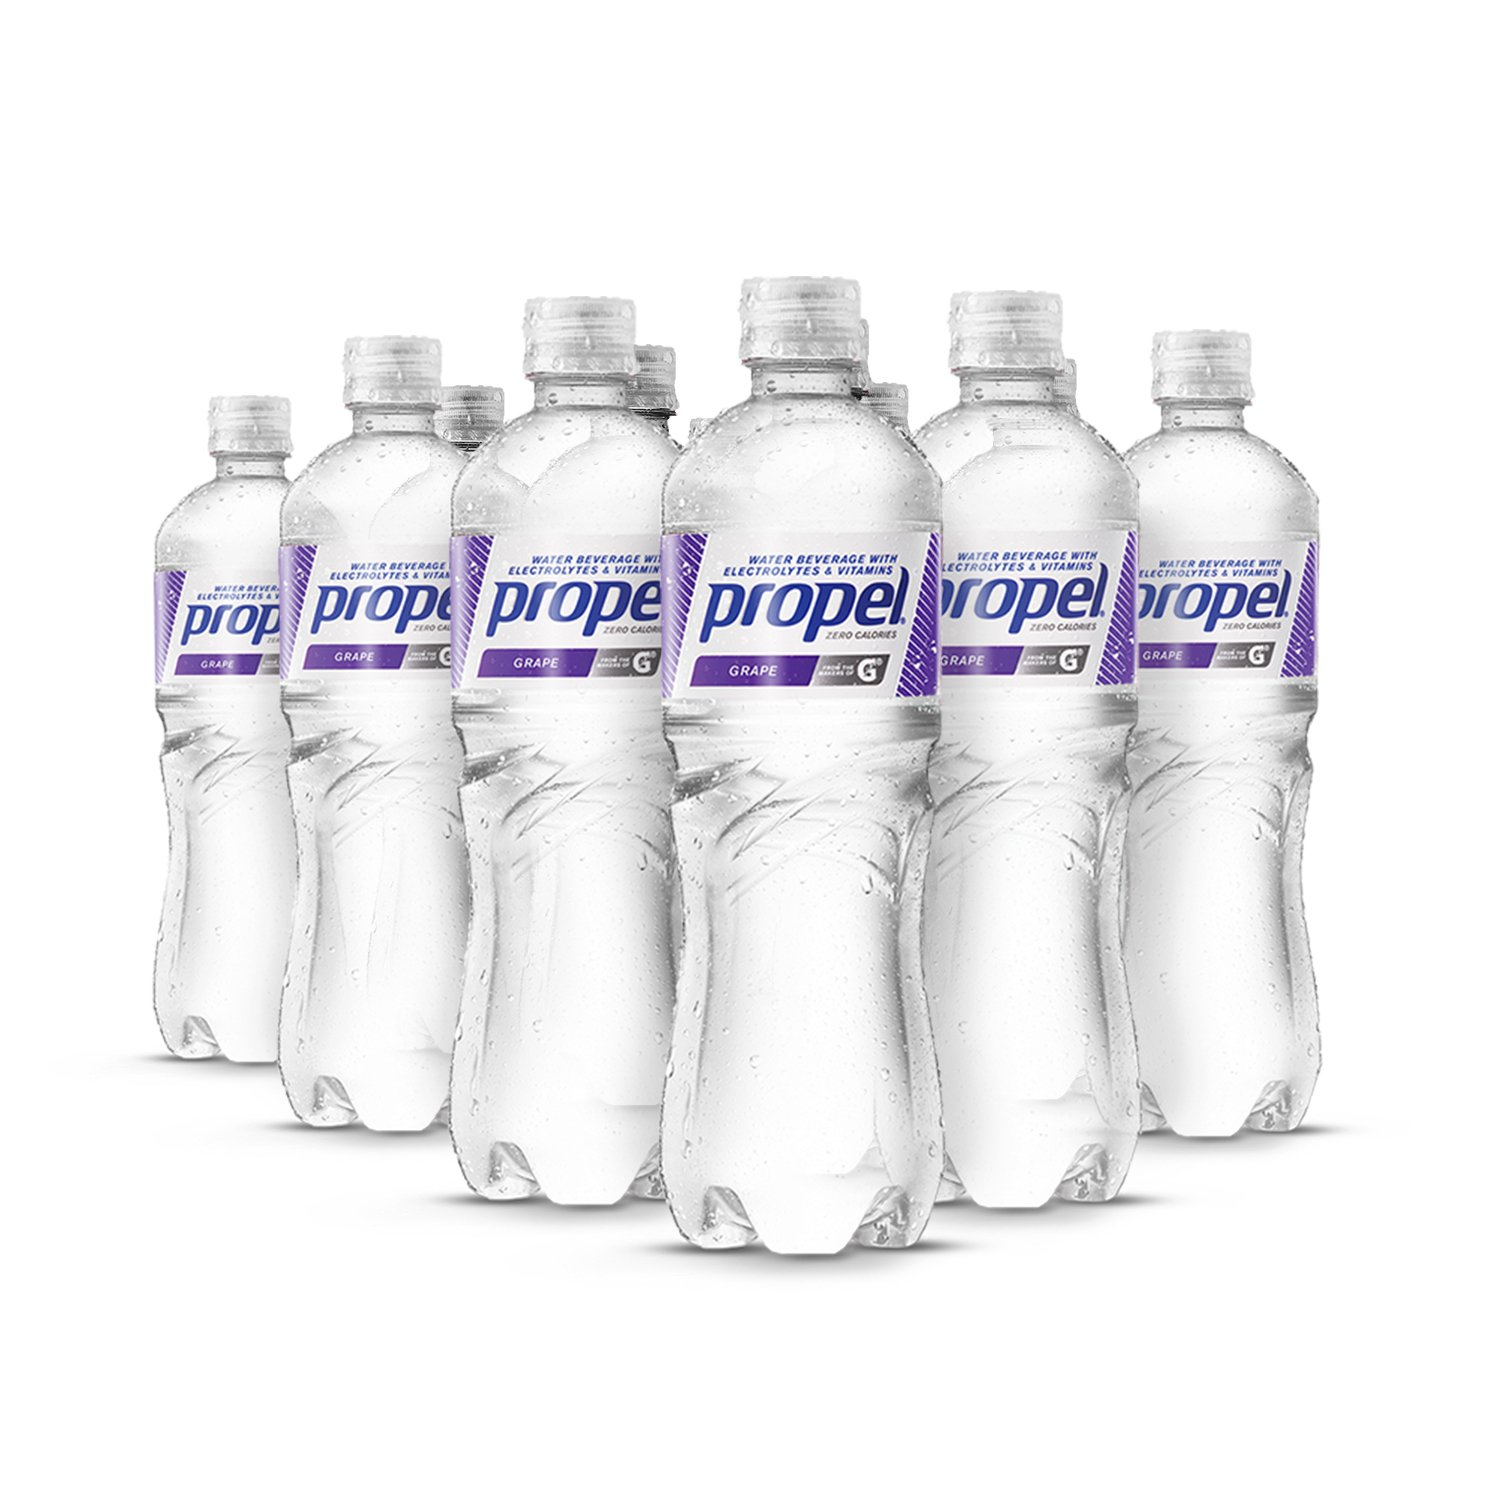 30302c97c3 Propel, Grape, Zero Calorie Sports Drinking Water with Electrolytes and  Vitamins C&E, 16.9 Ounce... by Propel